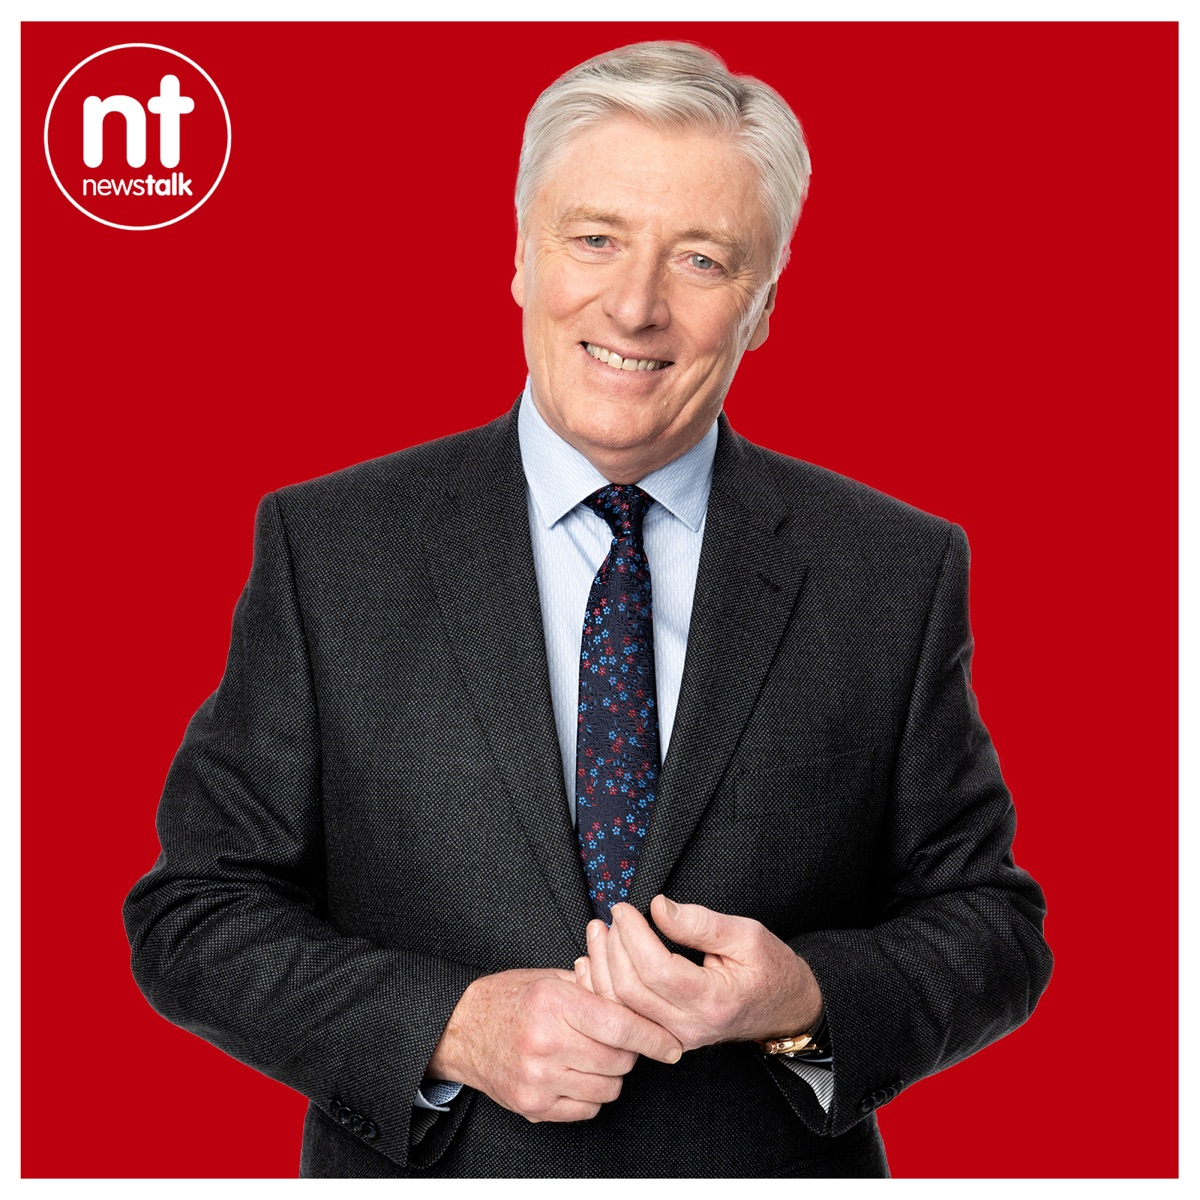 Highlights from The Pat Kenny Show